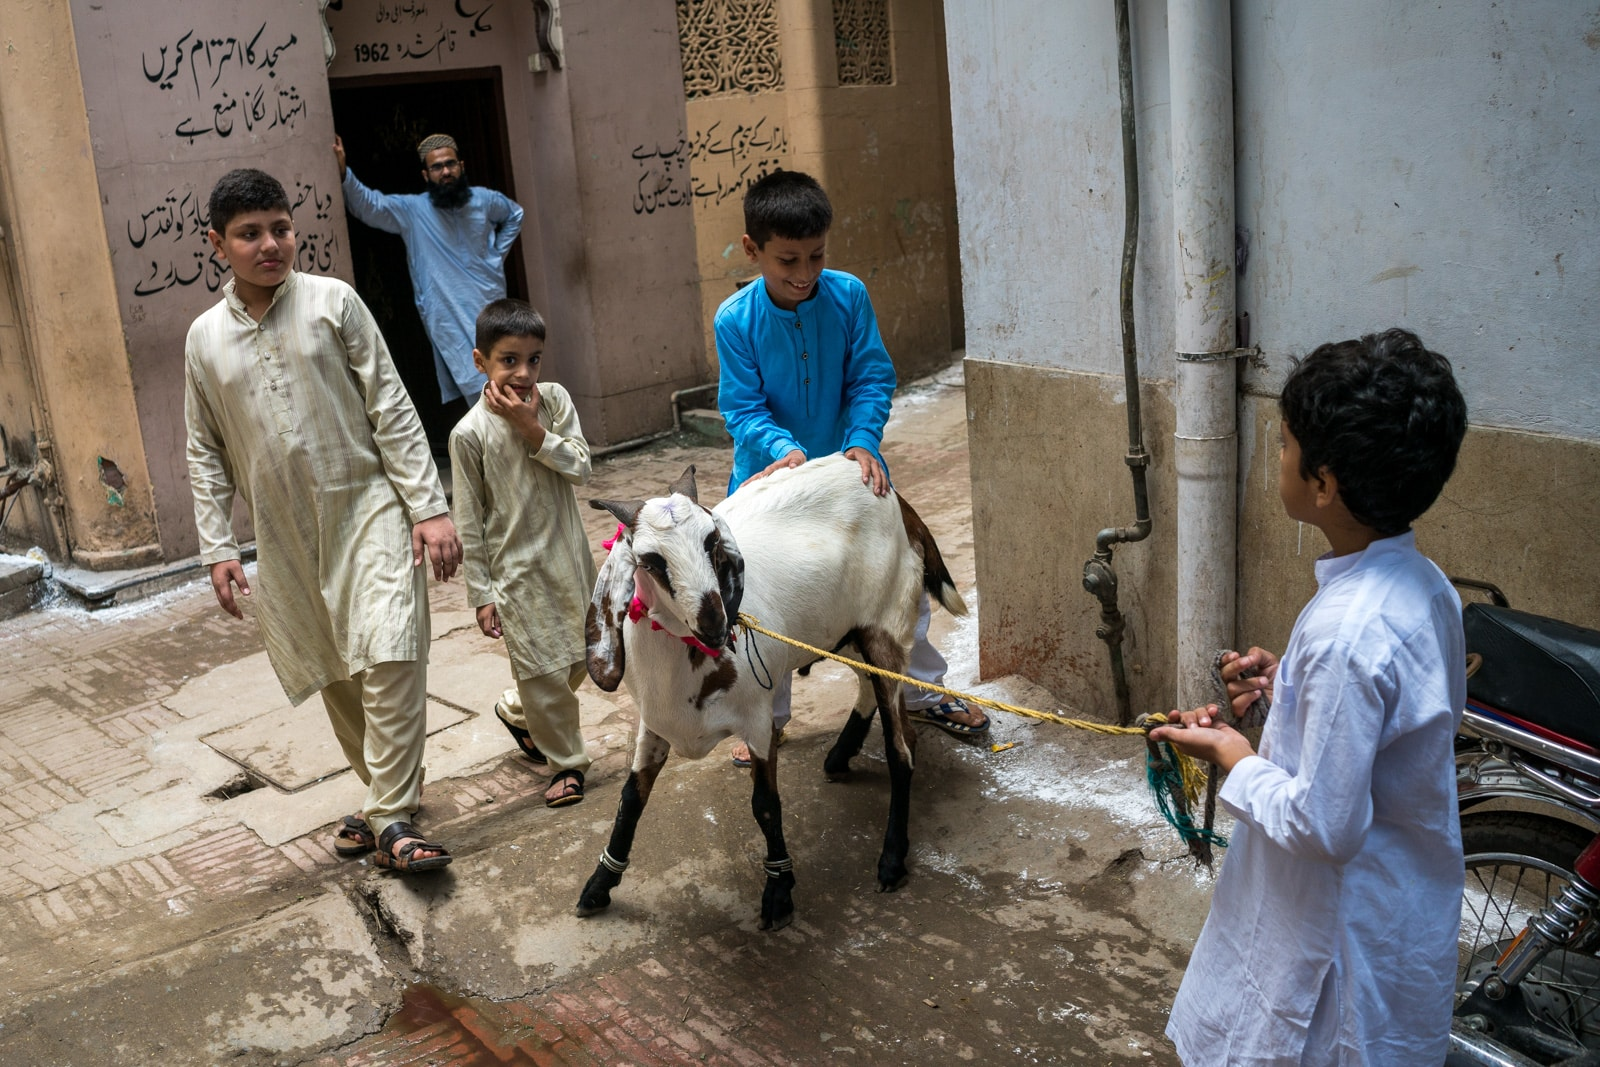 Celebrating Eid al-Adha in Lahore, Pakistan - Boys running a goat on a rope through the streets - Lost With Purpose travel blog